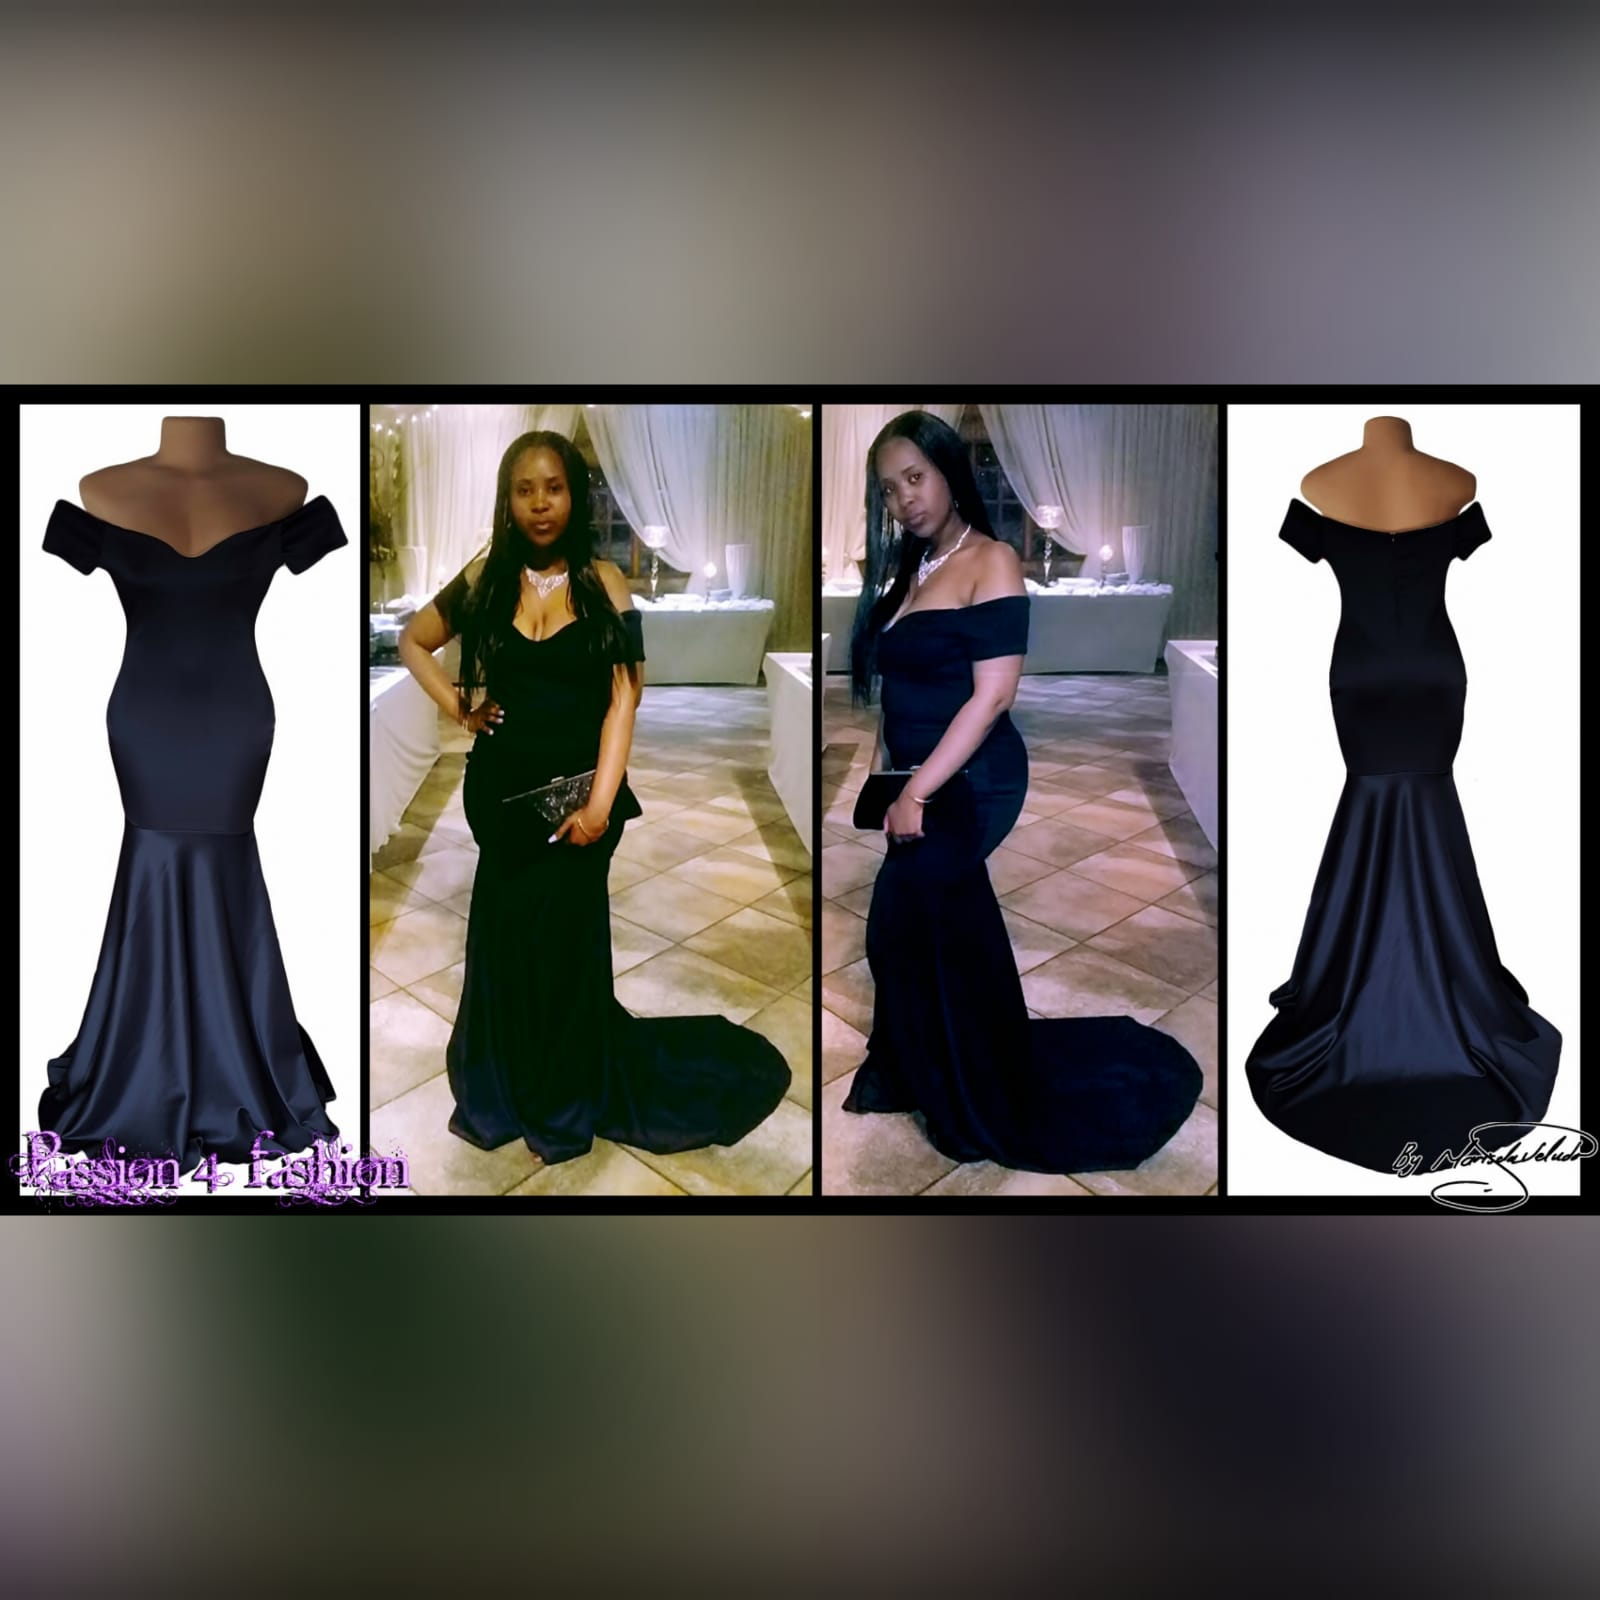 Off shoulder black soft mermaid prom dress 6 off shoulder black soft mermaid prom dress with a train and off shoulder cap sleeves